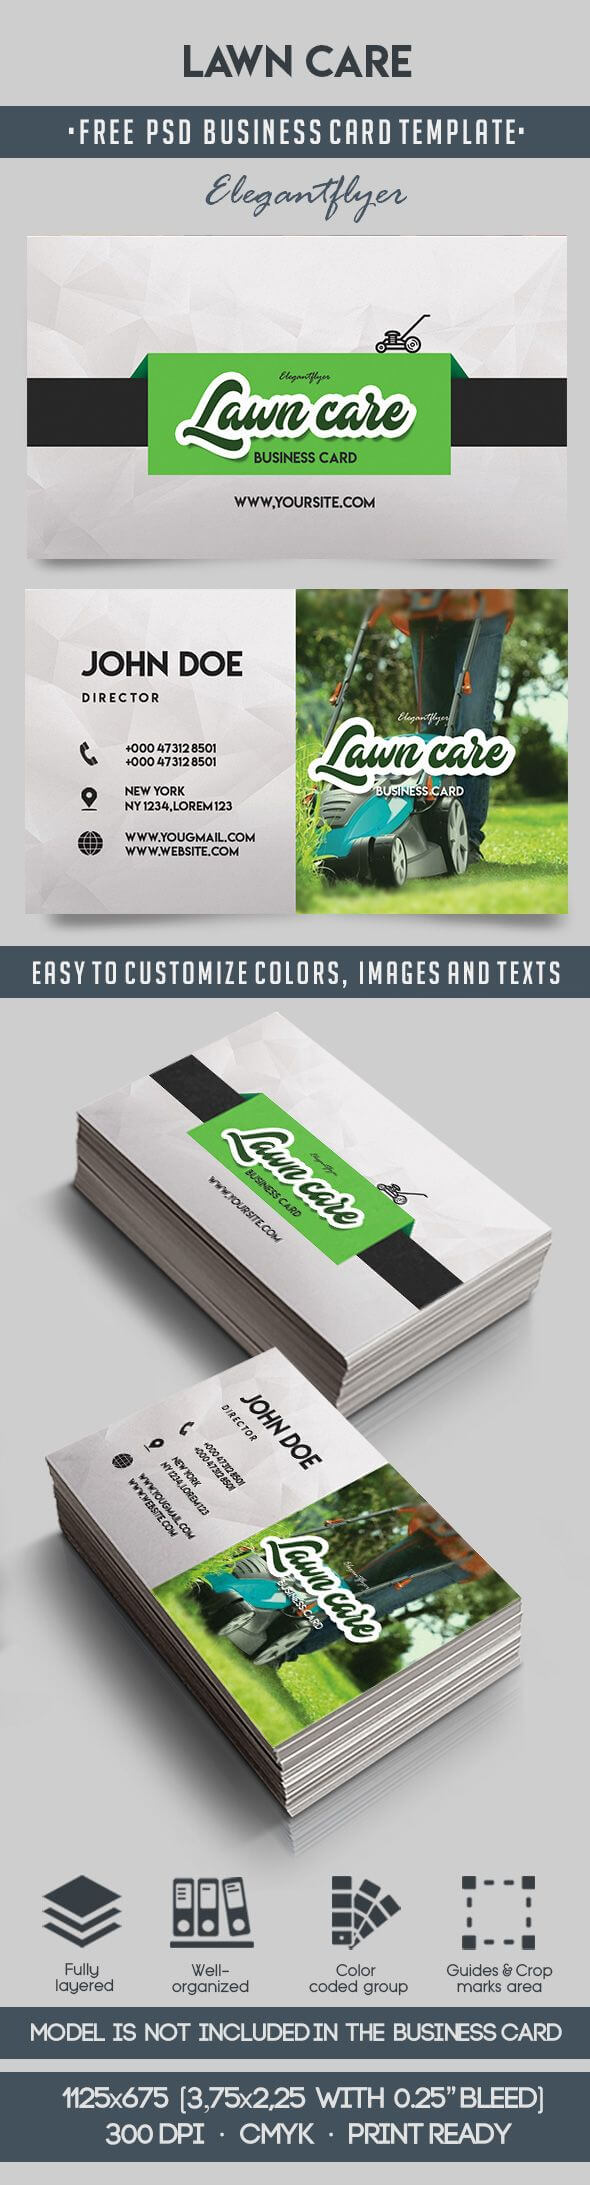 Lawn Care – Free Business Card Templates Psd For Lawn Care Business Cards Templates Free